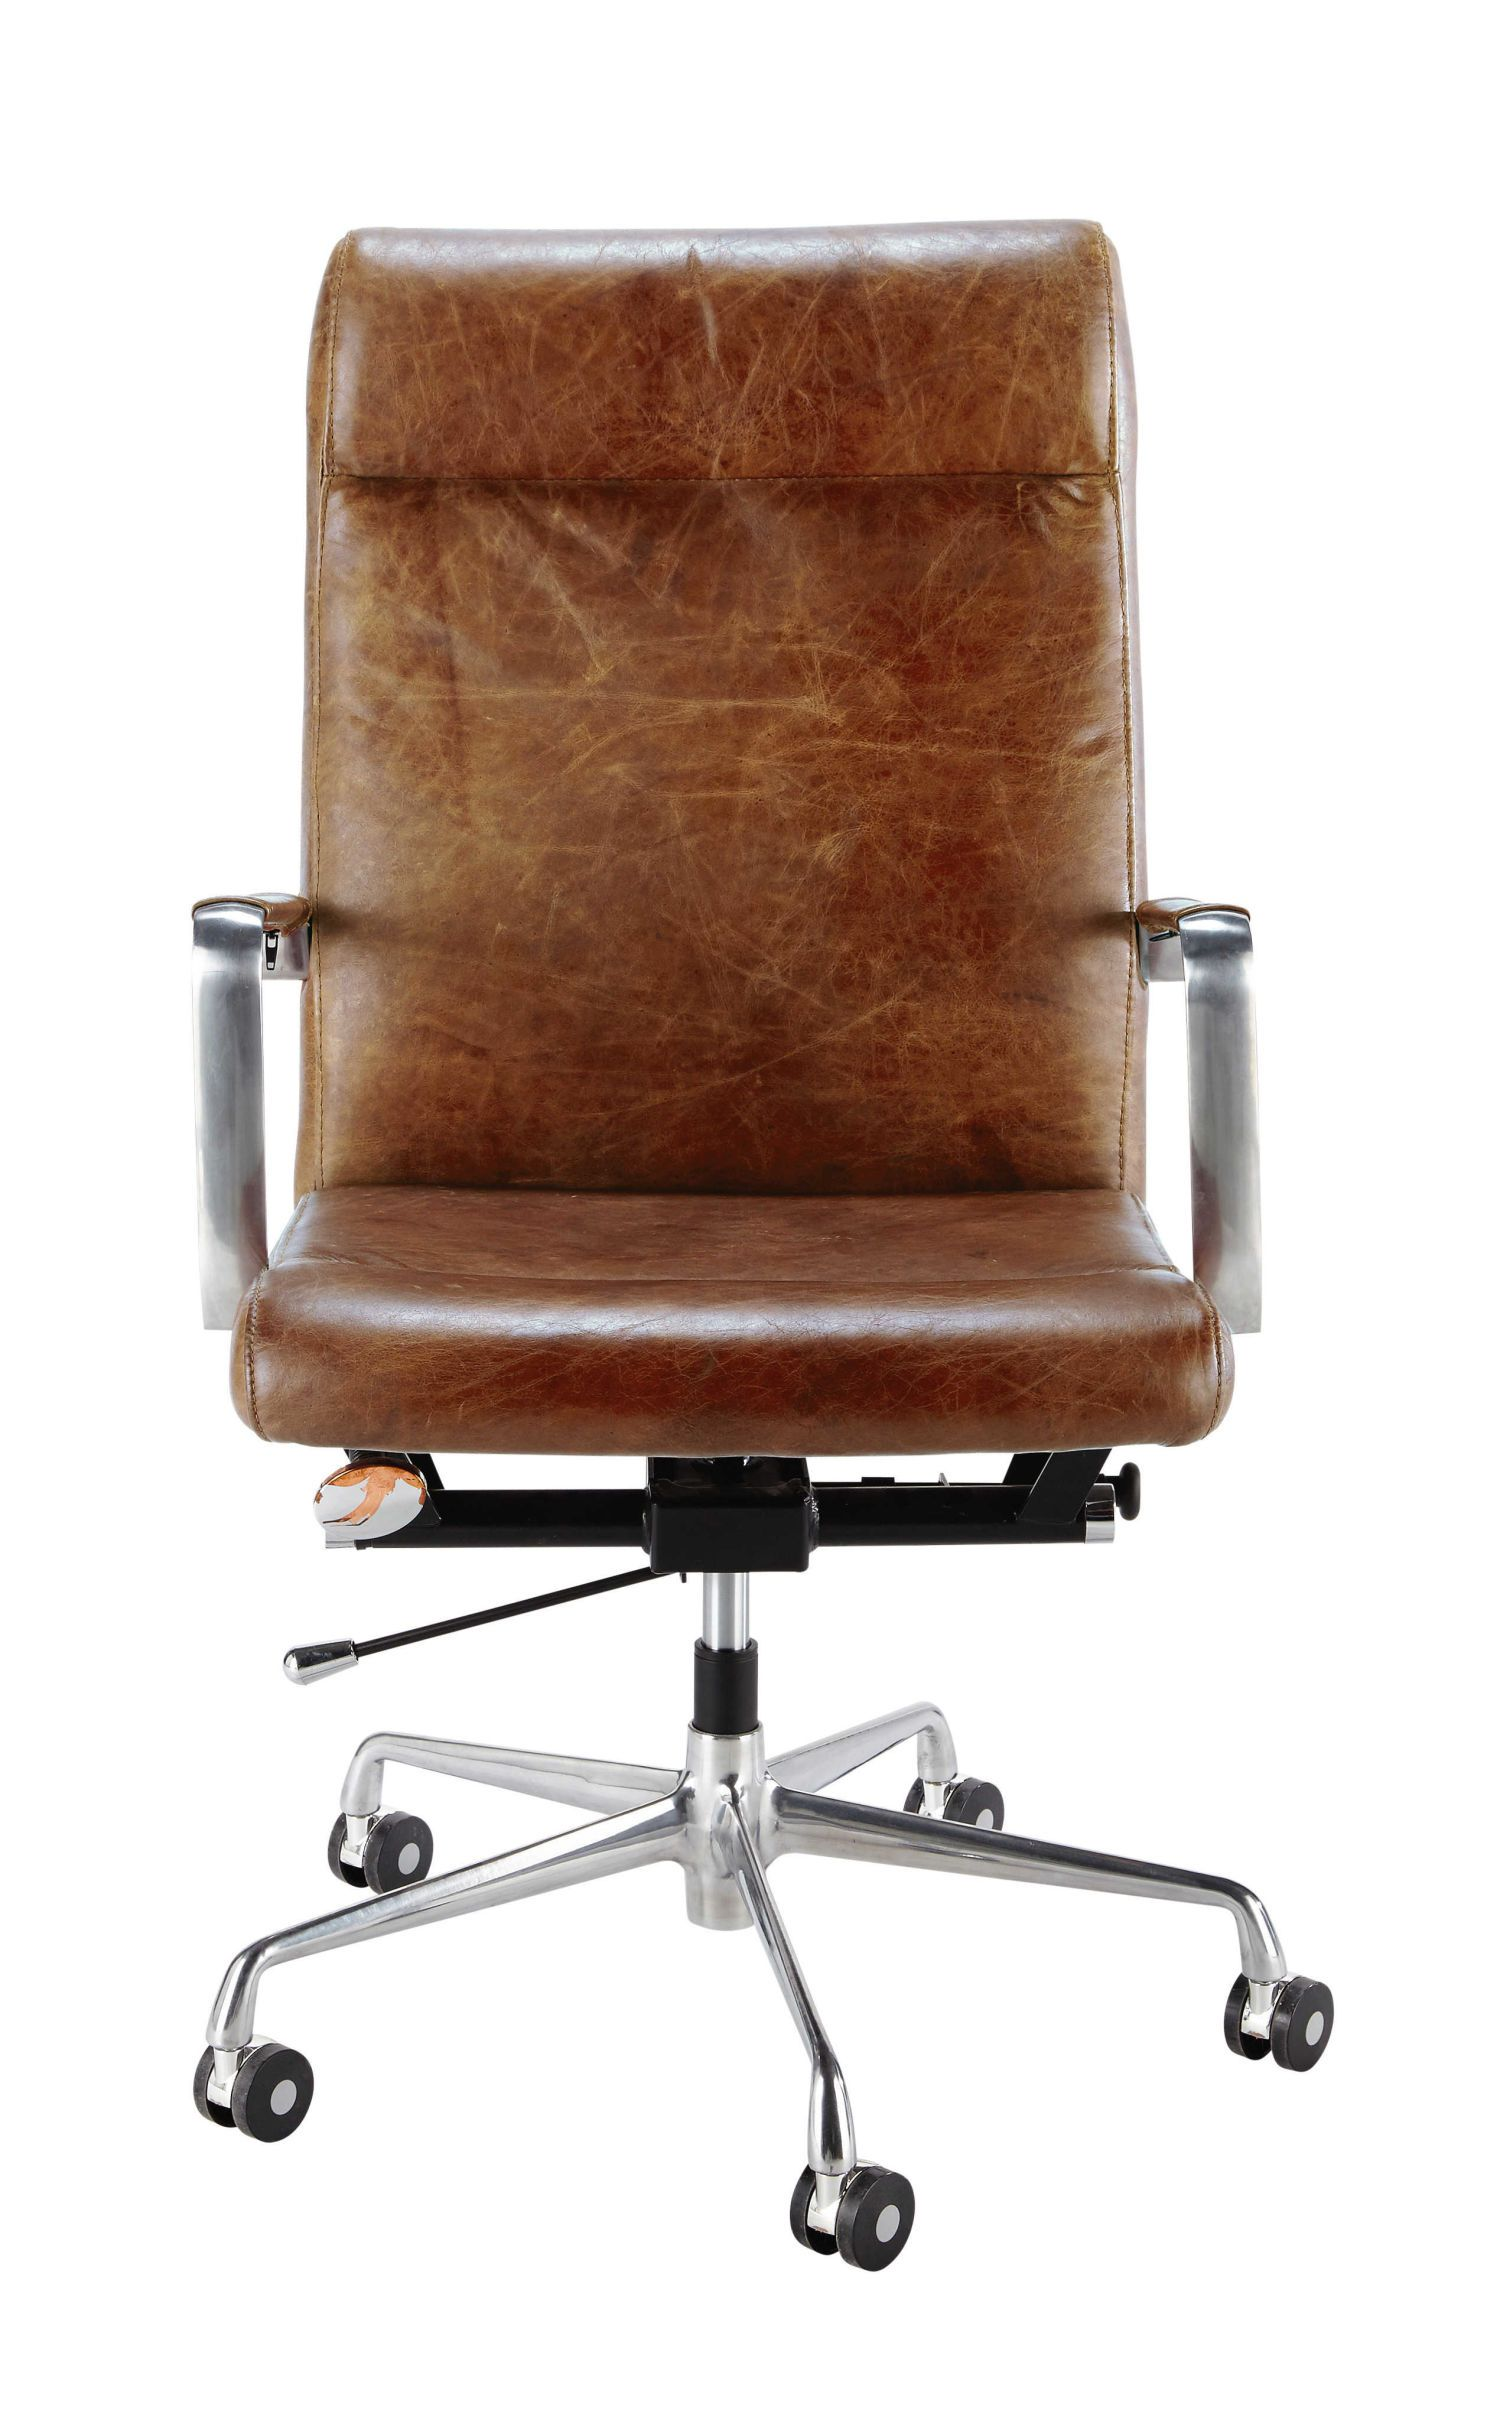 Wondrous Brown Leather And Metal Office Chair On Wheels Office Cjindustries Chair Design For Home Cjindustriesco